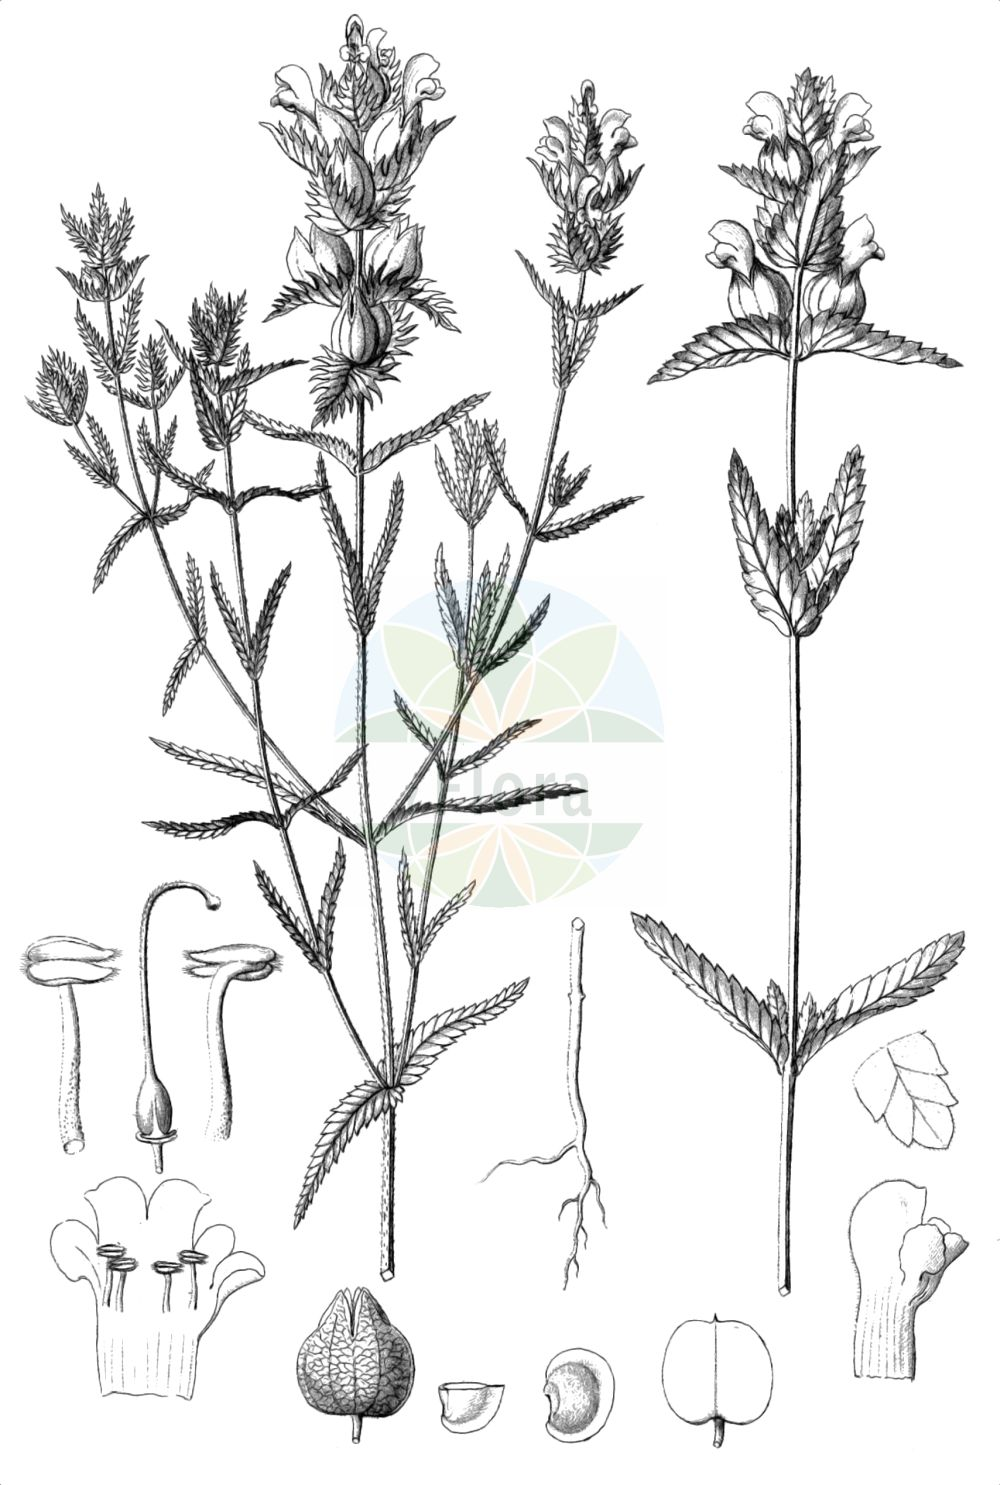 Historische Abbildung von Rhinanthus minor (Kleiner Klappertopf - Yellow-rattle). Das Bild zeigt Blatt, Bluete, Frucht und Same. ---- Historical Drawing of Rhinanthus minor (Kleiner Klappertopf - Yellow-rattle).The image is showing leaf, flower, fruit and seed.(Rhinanthus minor,Kleiner Klappertopf,Yellow-rattle,Alectorolophus borealis,Alectorolophus crista-galli,Alectorolophus drummond-hayi,Alectorolophus minor,Alectorolophus monticola,Alectorolophus parviflorus,Alectorolophus rusticulus,Alectorolophus stenophyllus,Rhinanthus balticus,Rhinanthus borealis,Rhinanthus crista-galli L. var.,Rhinanthus hercynicus,Rhinanthus minor,Rhinanthus minor L. subsp.,Rhinanthus minor L. var.,Rhinanthus nigricans,Rhinanthus rusticulus,Rhinanthus stenophyllus,Kleiner Klappertopf,Yellow-rattle,Cockscomb Rattleweed,Little Yellow Rattle,Lesser Yellow Rattle,Rhinanthus,Klappertopf,Yellow Rattle,Orobanchaceae,Sommerwurzgewaechse,Broomrape family,Blatt,Bluete,Frucht,Same,leaf,flower,fruit,seed,Reichenbach (1823-1832))